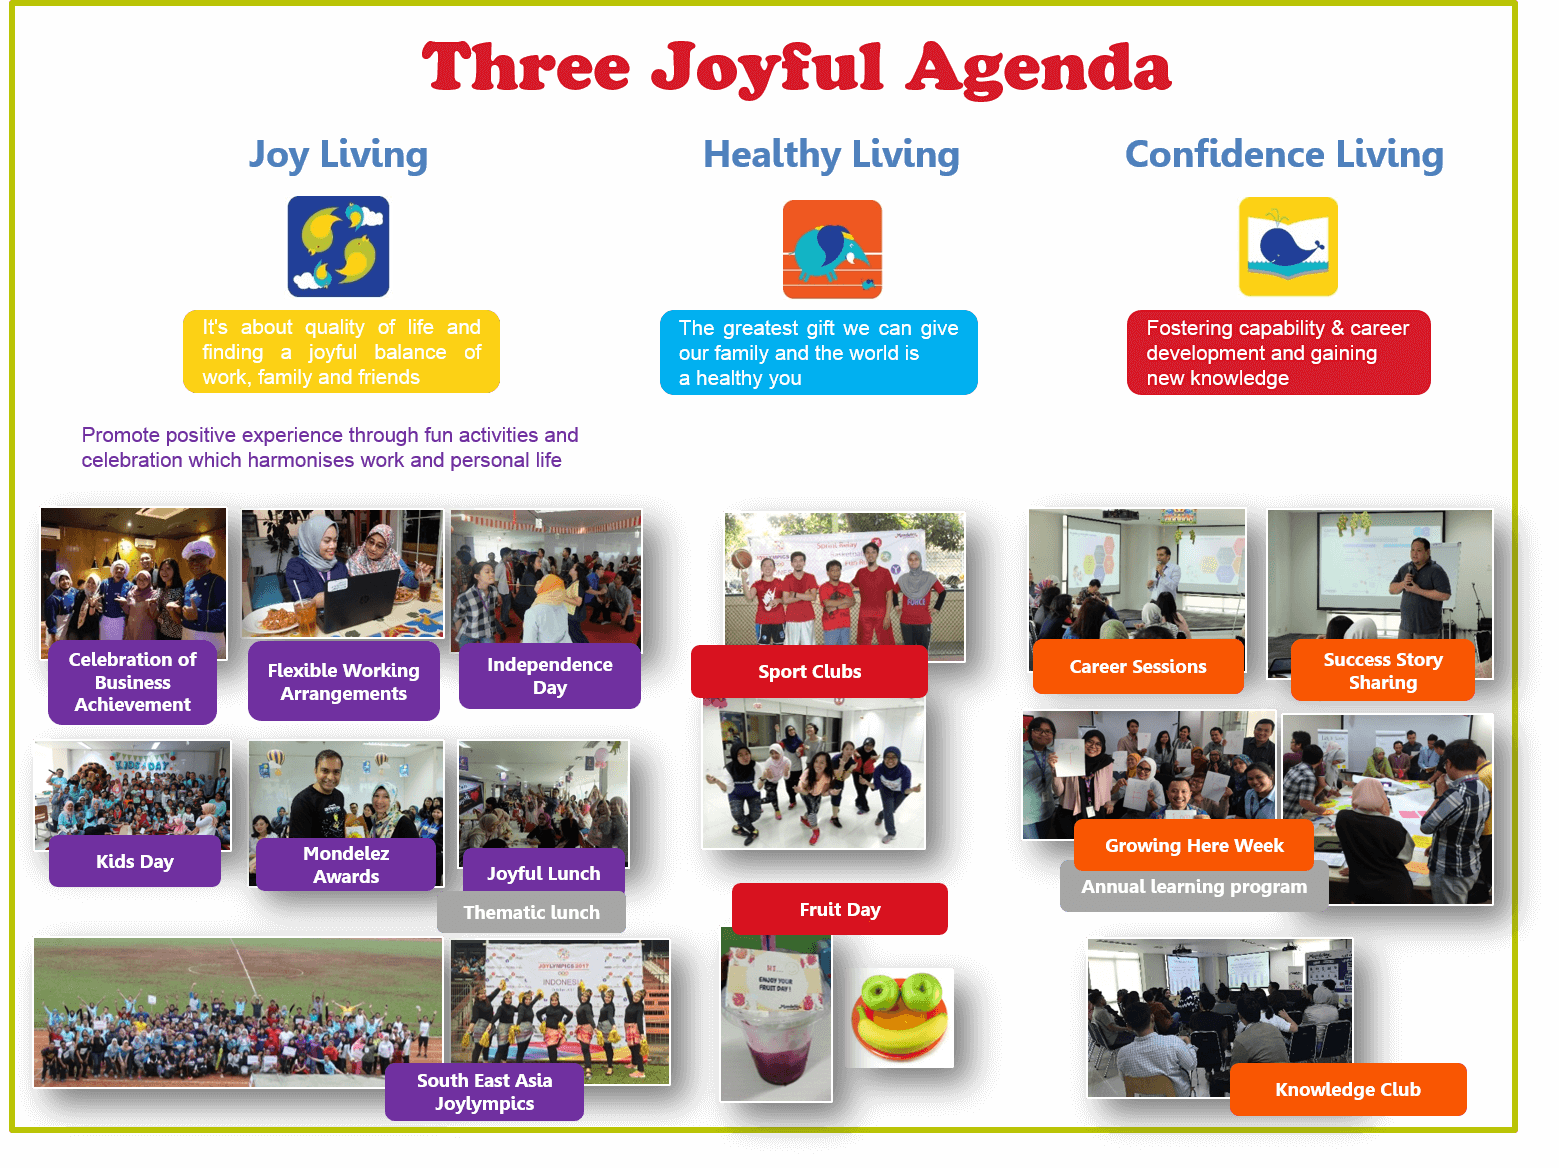 Our Joyful Agenda